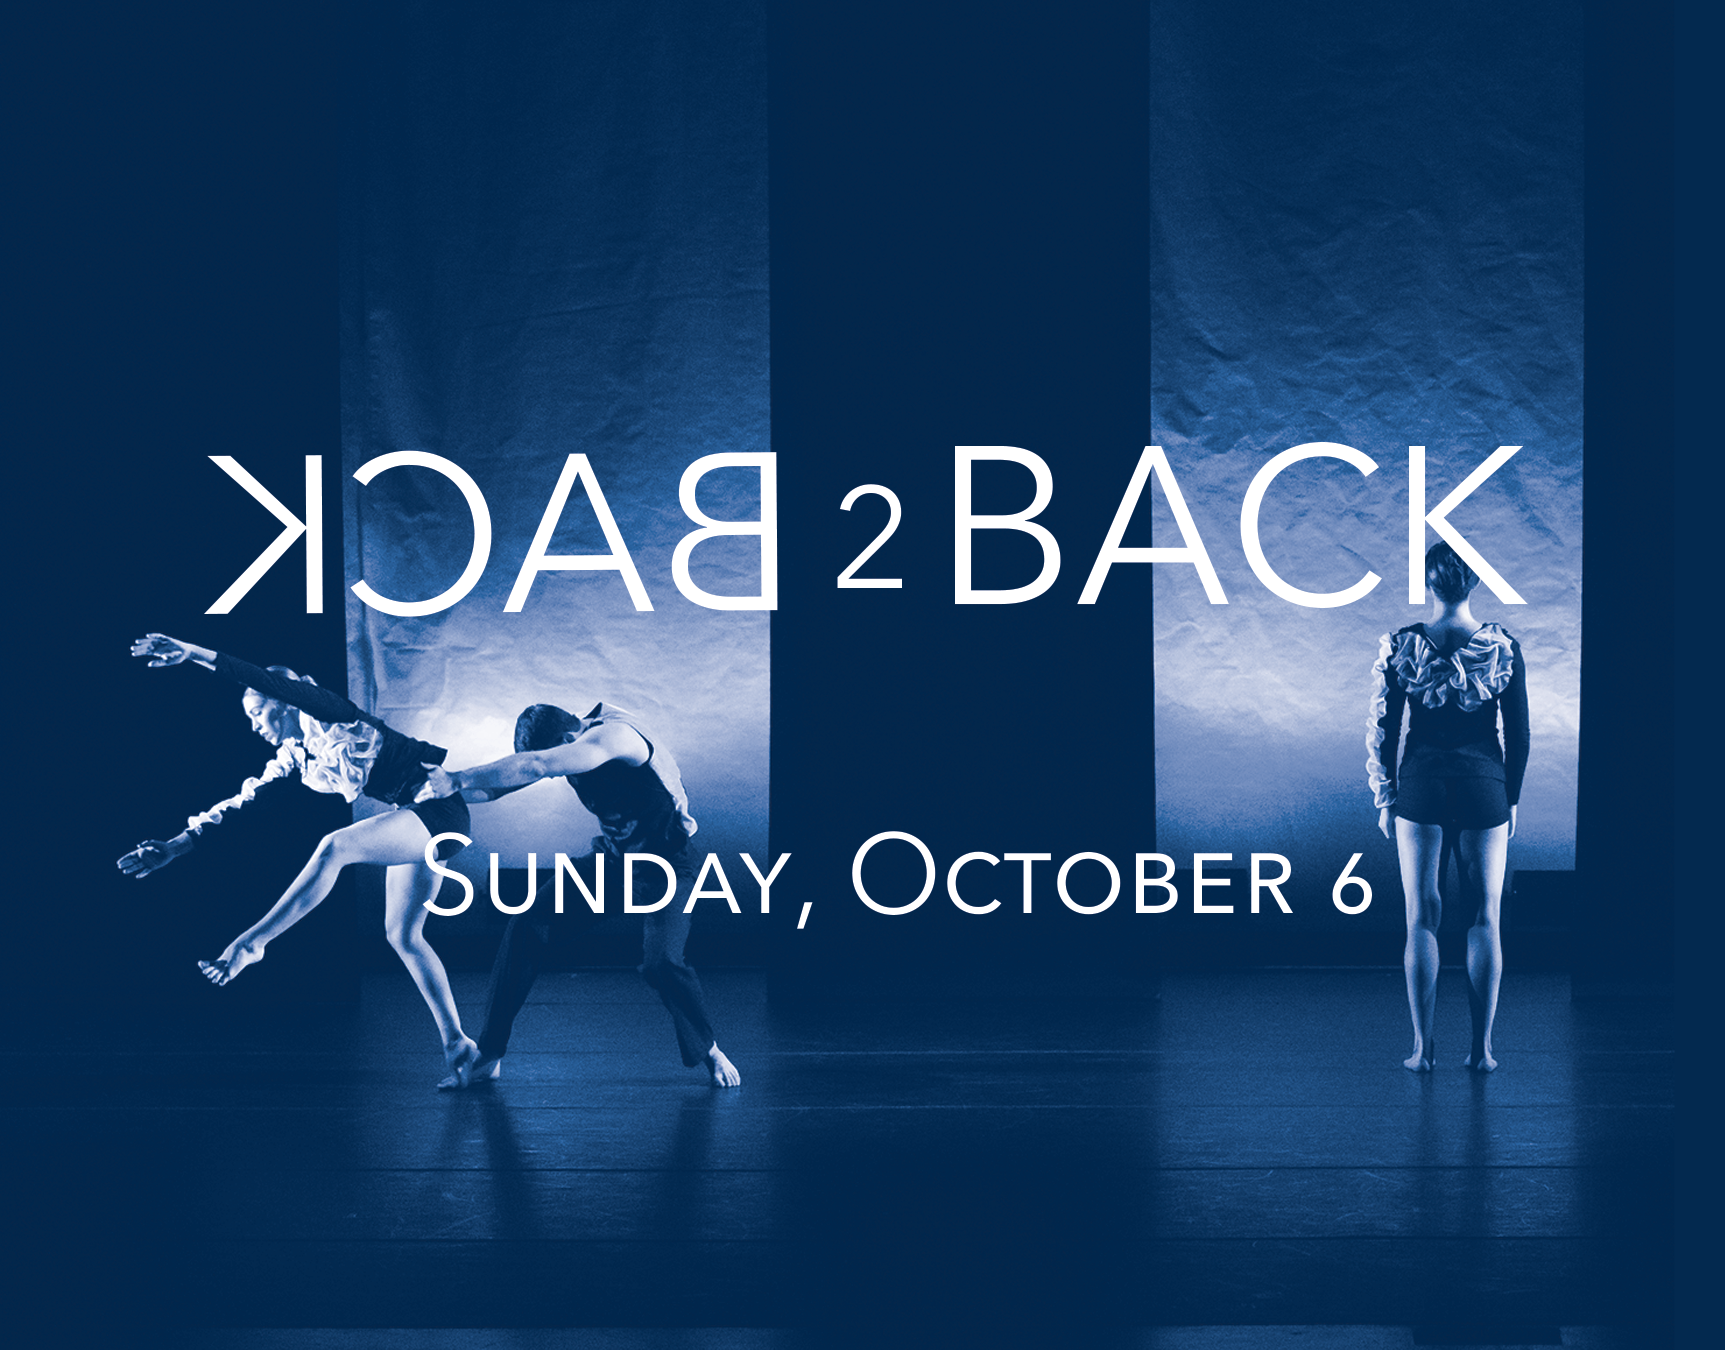 Back2Back|Bach2Beatles - Sunday, October 6 | 2:00pmCelebrate as Eisenhower Dance Detroit opens it's 29th Metro Series Season with Back2Back|Bach2Beatles. In collaboration with Detroit electro-pop violin band, Nuclassica, this exhilarating double bill will feature EDD Artistic Director, Stephanie Pizzo's, The Lovely Exchange, set to Bach's Partita for Violin Solo No. 1 in B Minor and the premiere of her new work set to the timeless music of the Beatles with live musical accompaniment.$18 General Admission$14 Senior (Ages 62+)$10 StudentSeligman Performing Arts Center22305 W. Thirteen Mile Rd. Beverly Hills, MI 48025.